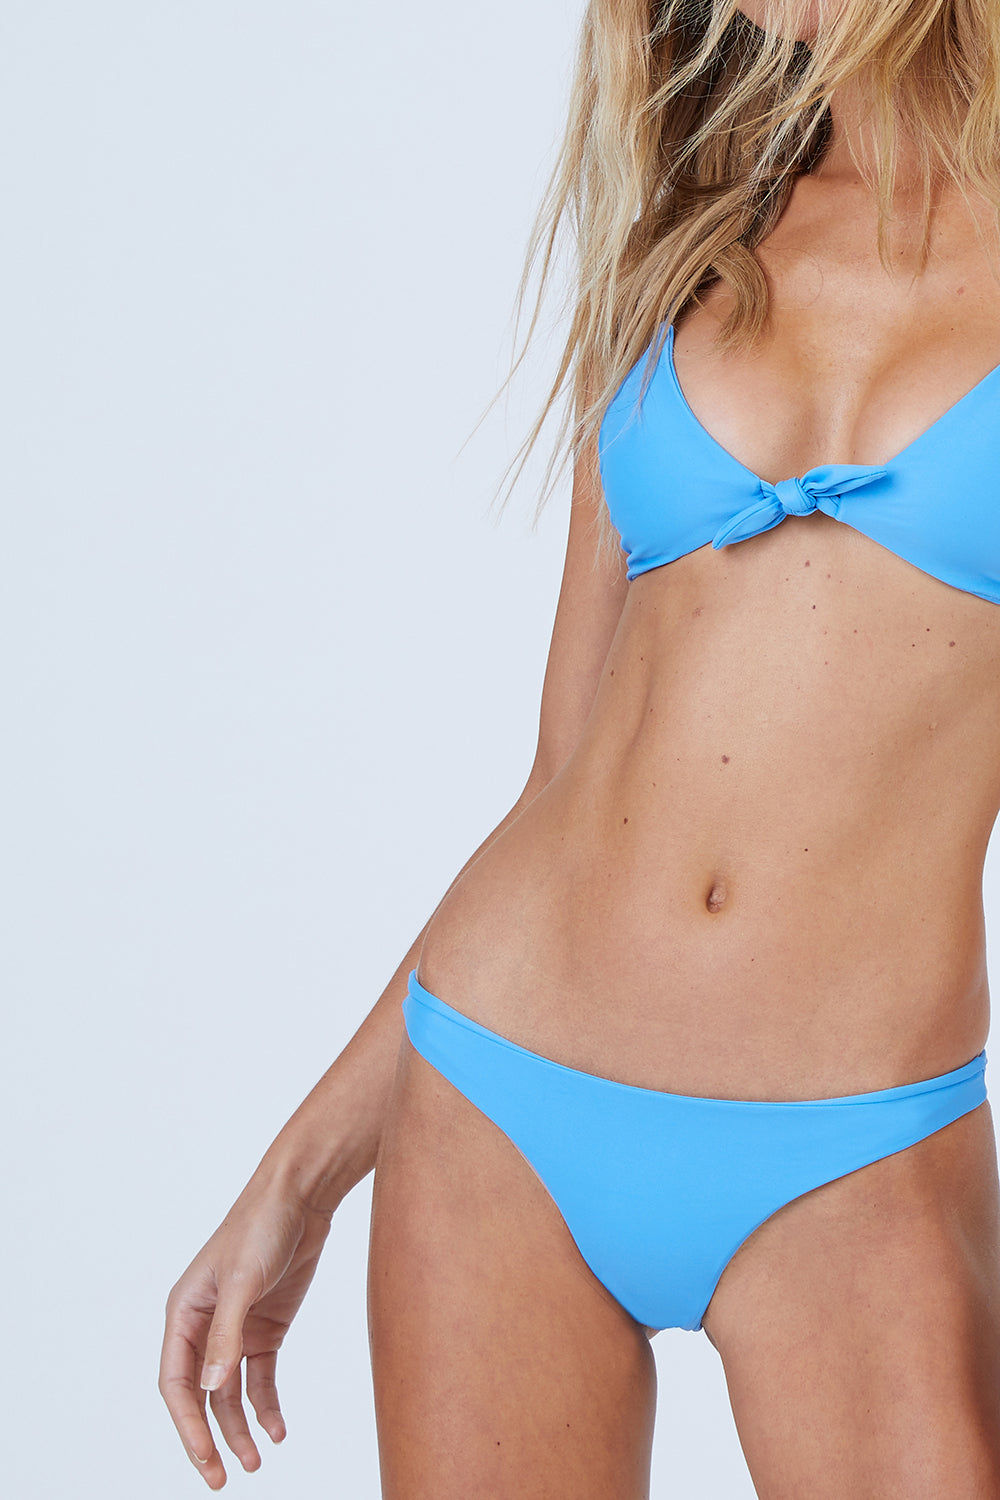 AILA BLUE Ocean Cheeky Low Rise Bikini Bottom - Patriot Blue Bikini Bottom | Patriot Blue | Aila Blue Ocean Cheeky Low Rise Bikini Bottom -  Patriot Blue Low Rise  Narrow Side Straps Cheeky Coverage Front View